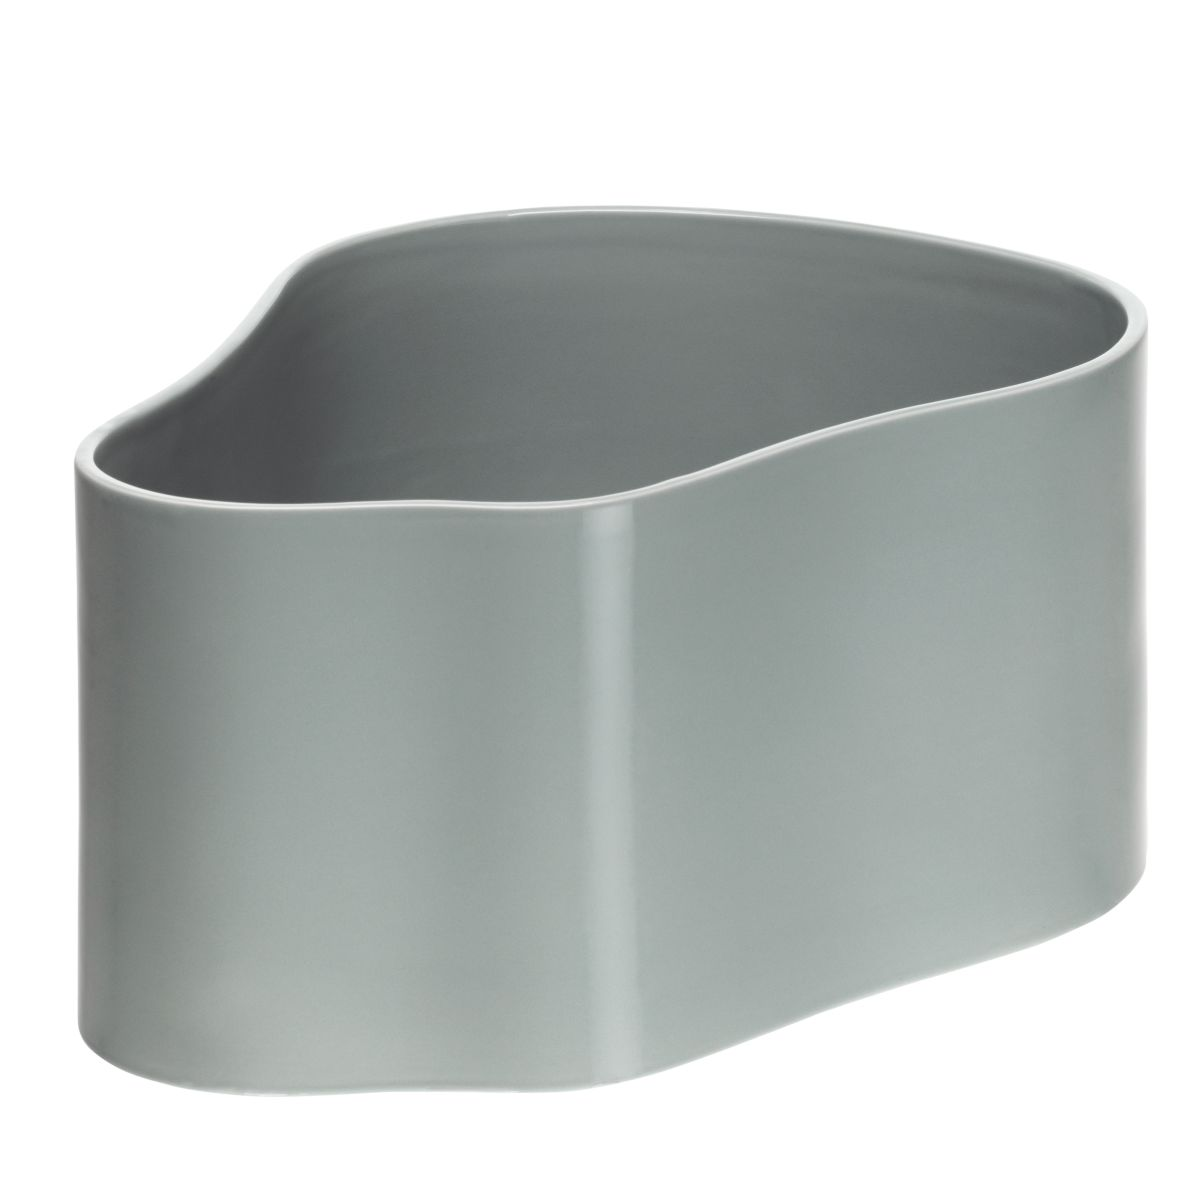 Plant pot shape A, size L, Light grey gloss_F